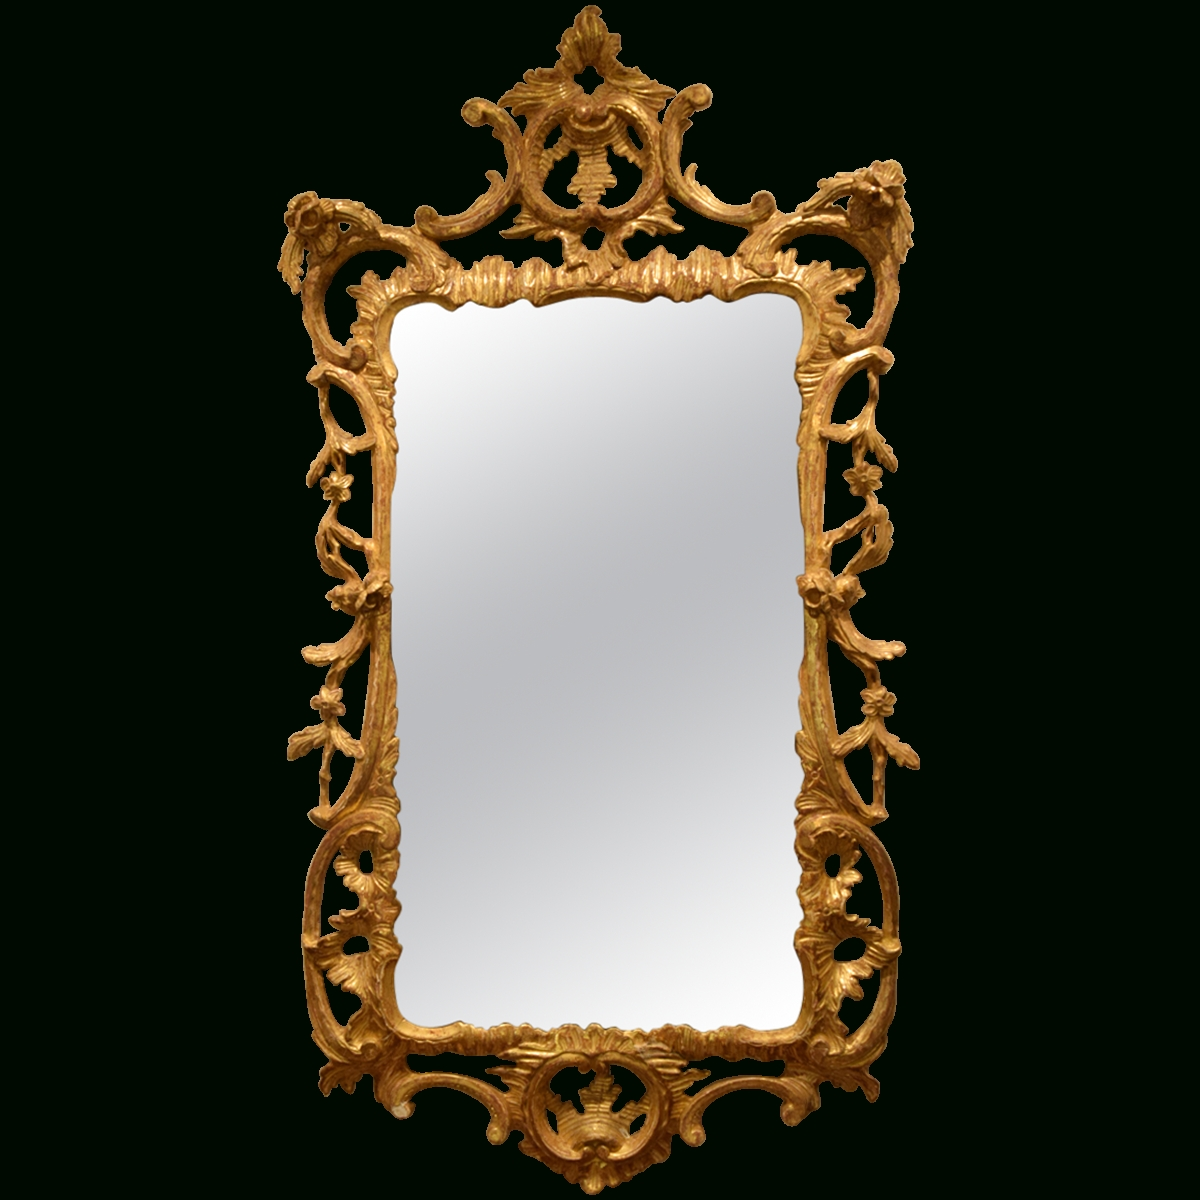 Viyet - Designer Furniture - Accessories - Antique Wall Mirror regarding Antiqued Wall Mirrors (Image 24 of 25)